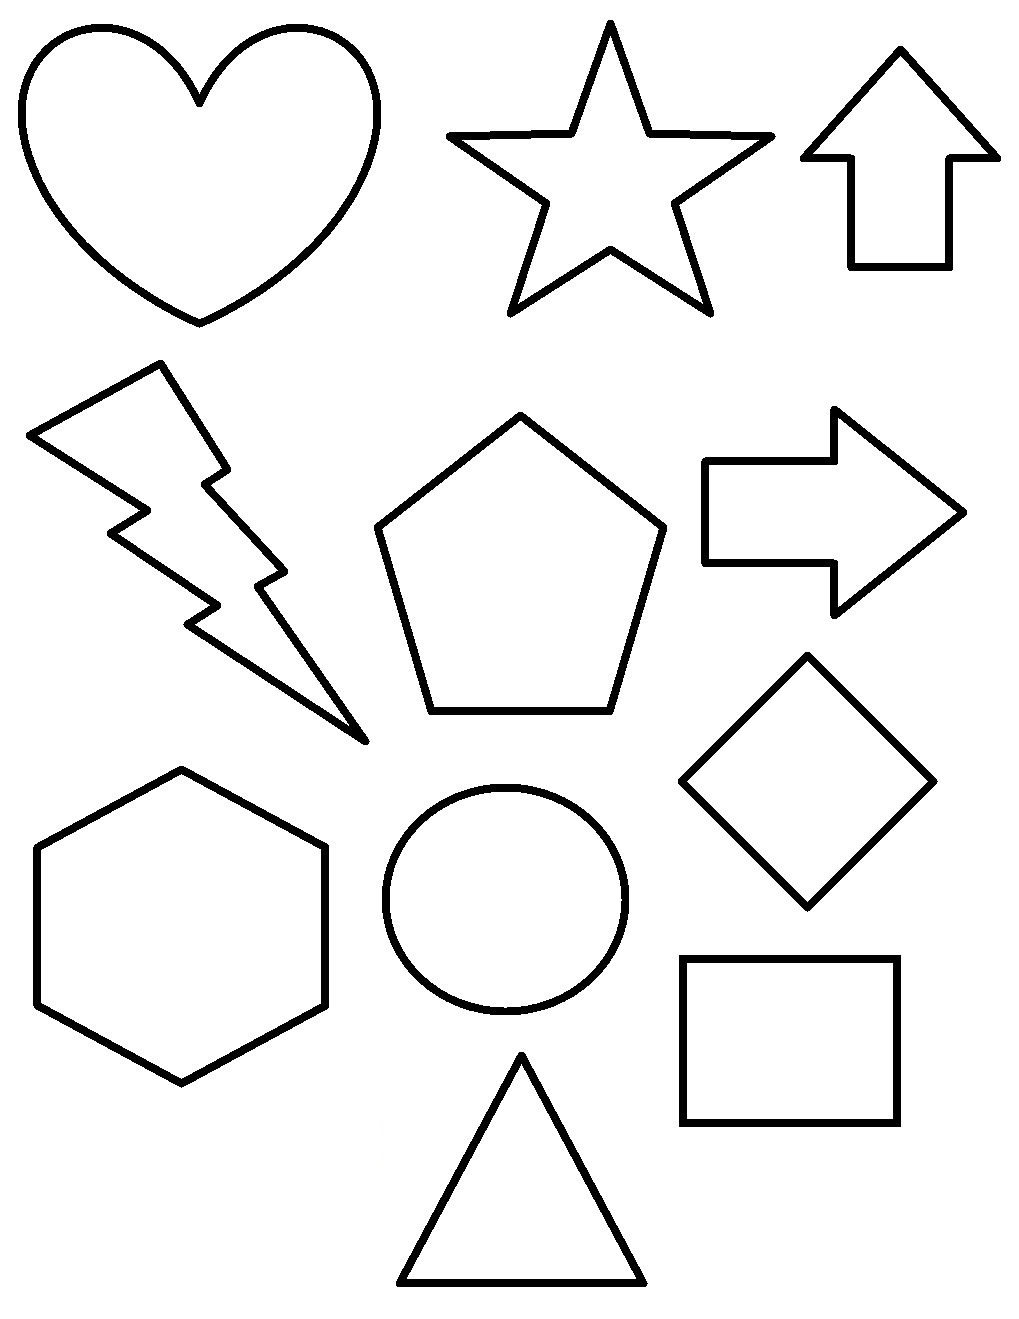 Coloring shapes worksheet - Shapes Coloring Page